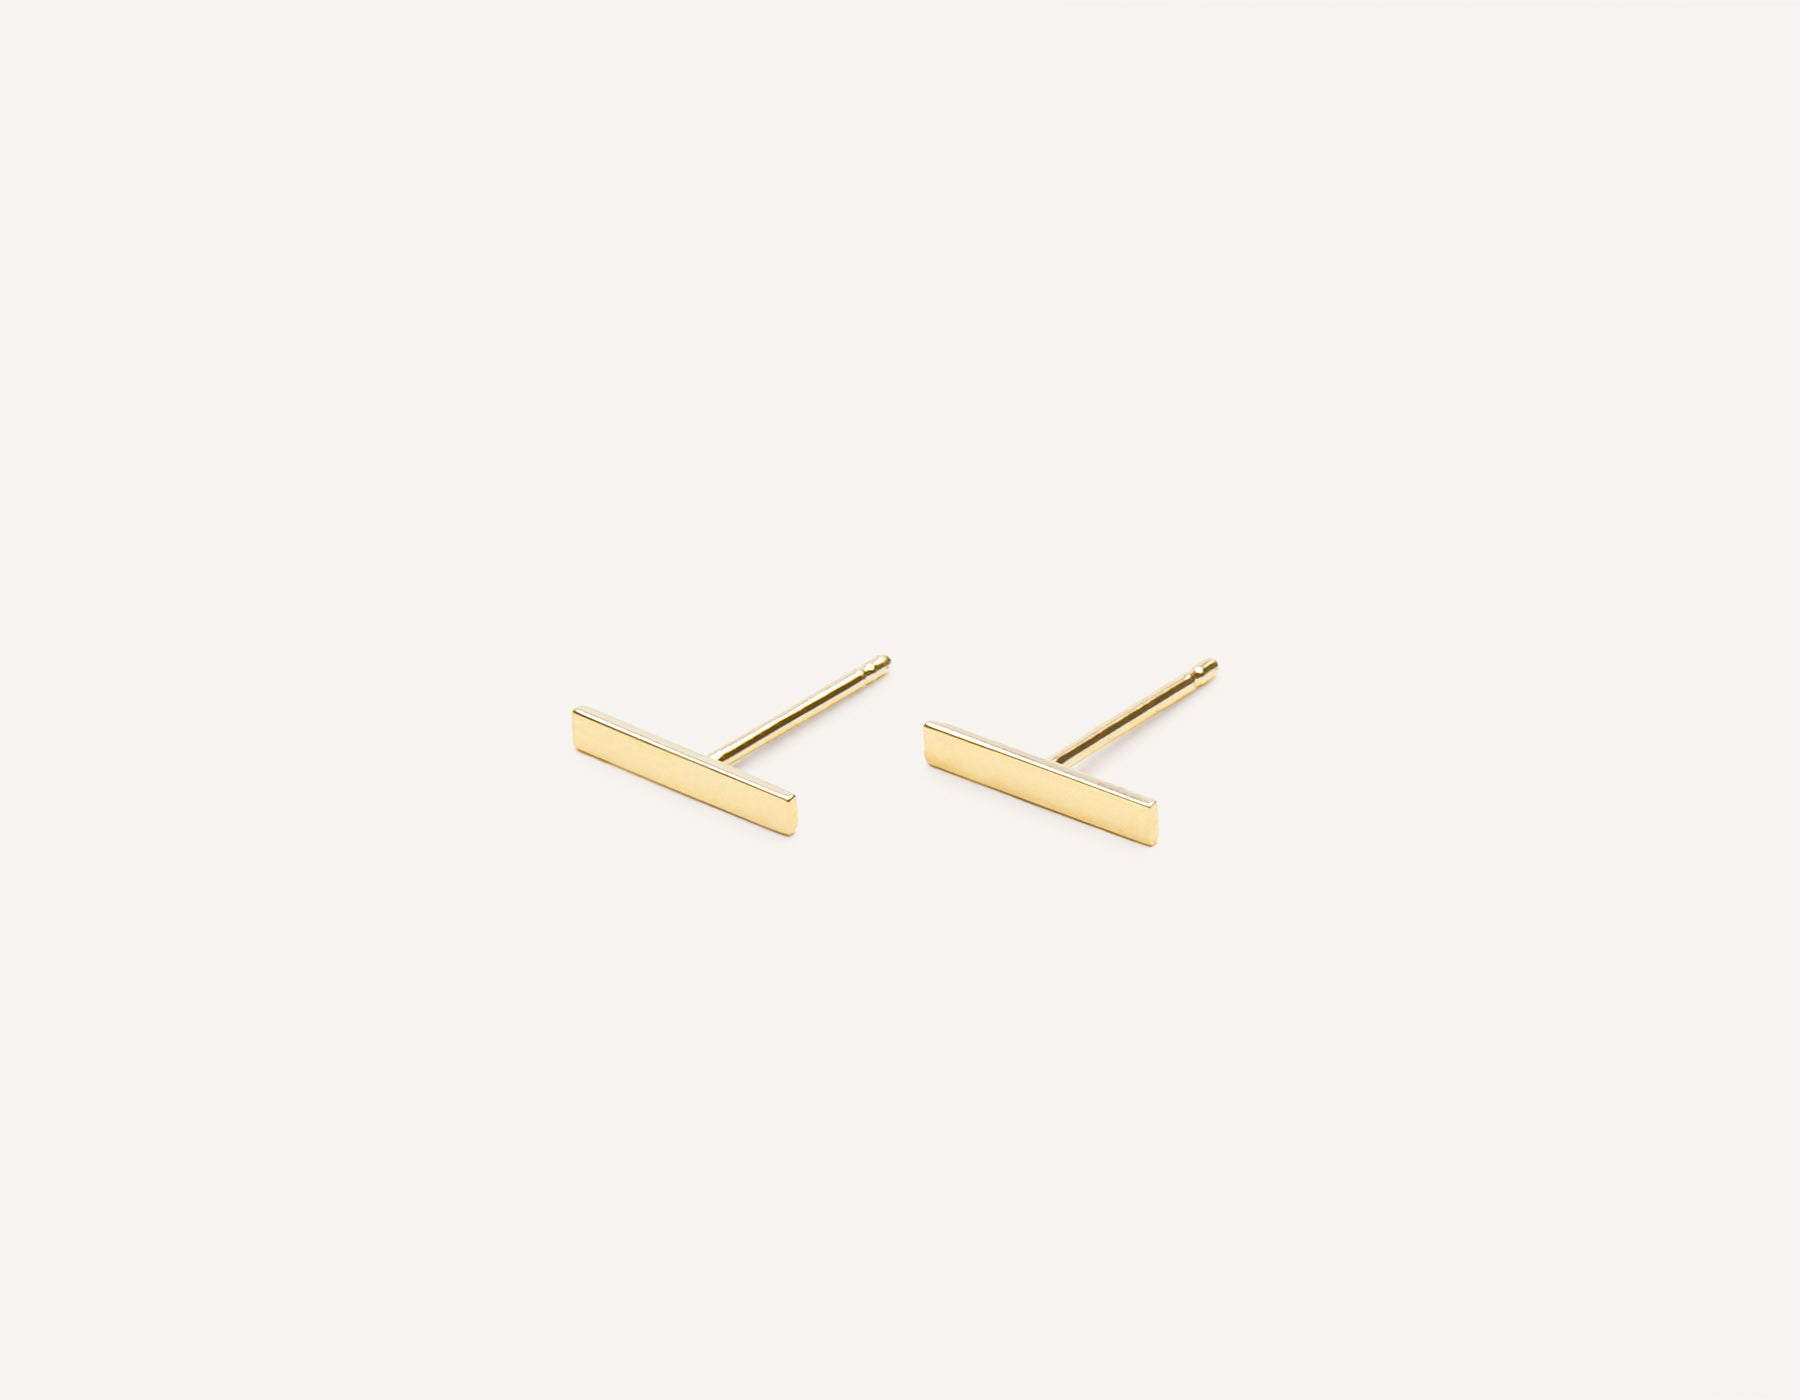 Simple classic Line Stud earrings 14k solid gold Vrai & Oro minimalist jewelry, 14K Yellow Gold